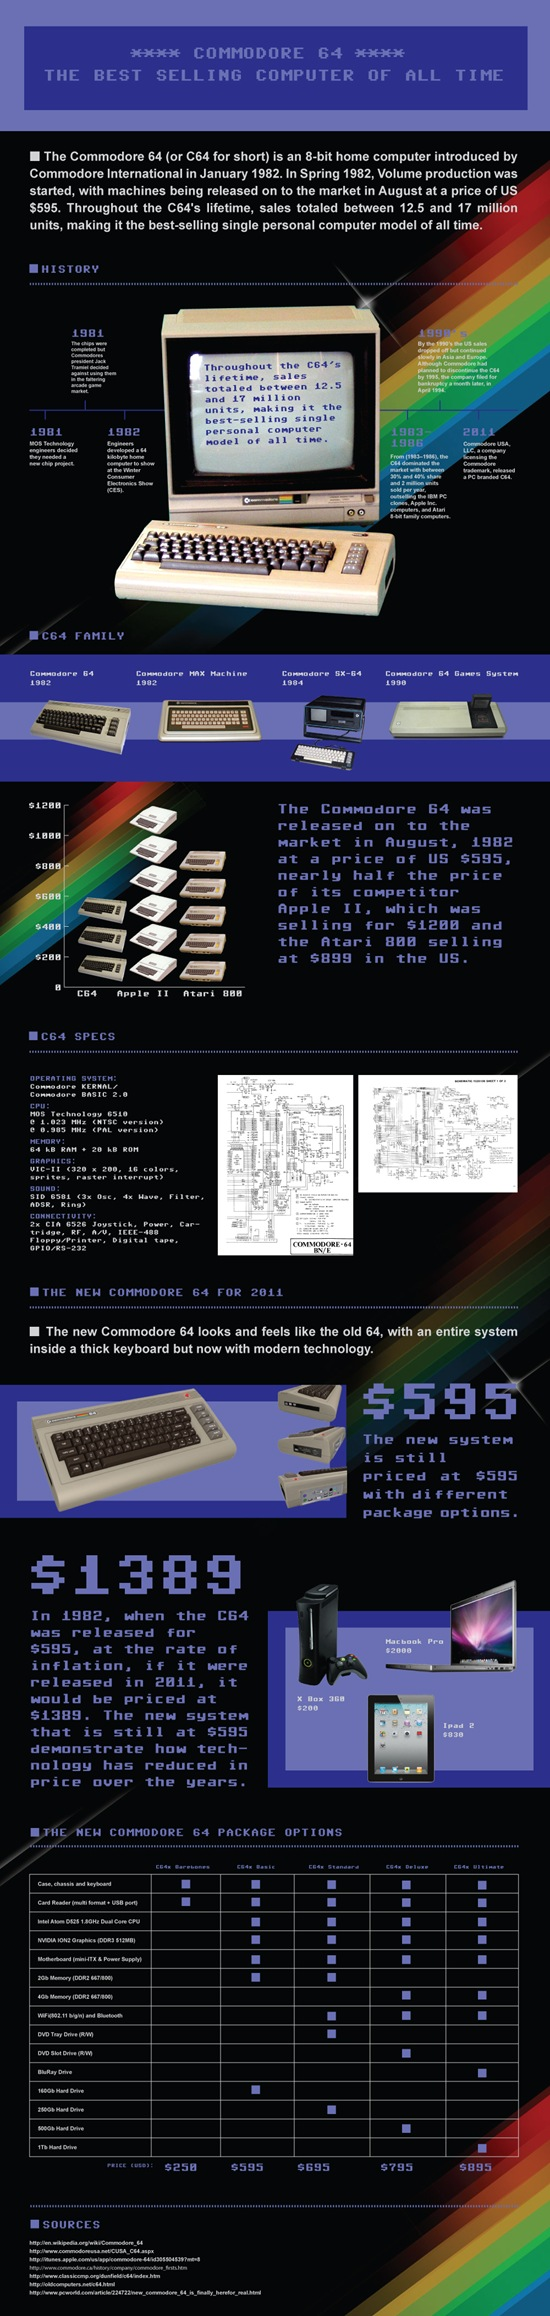 Best Selling computer of all time {infographic}